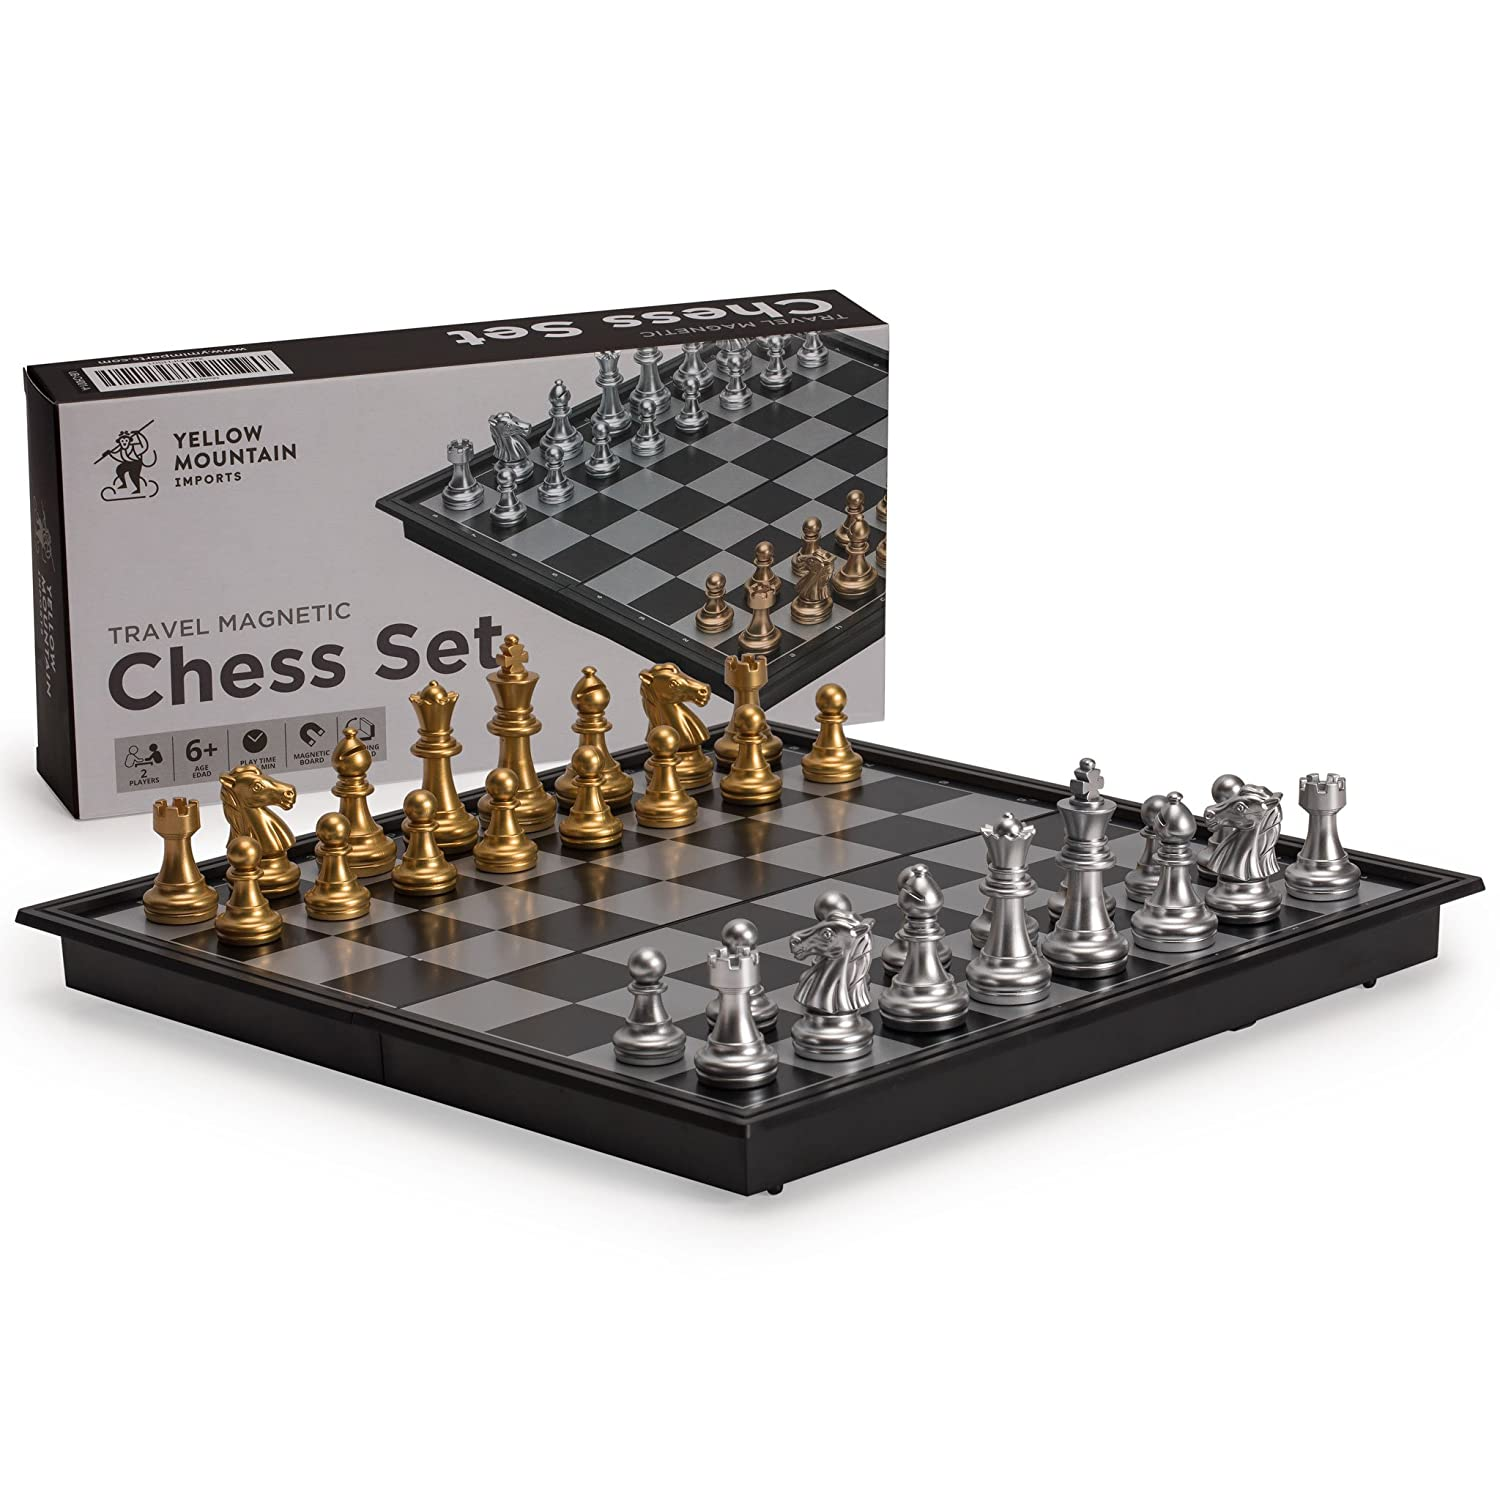 Yellow Mountain Imports Magnetic Travel Chess Set